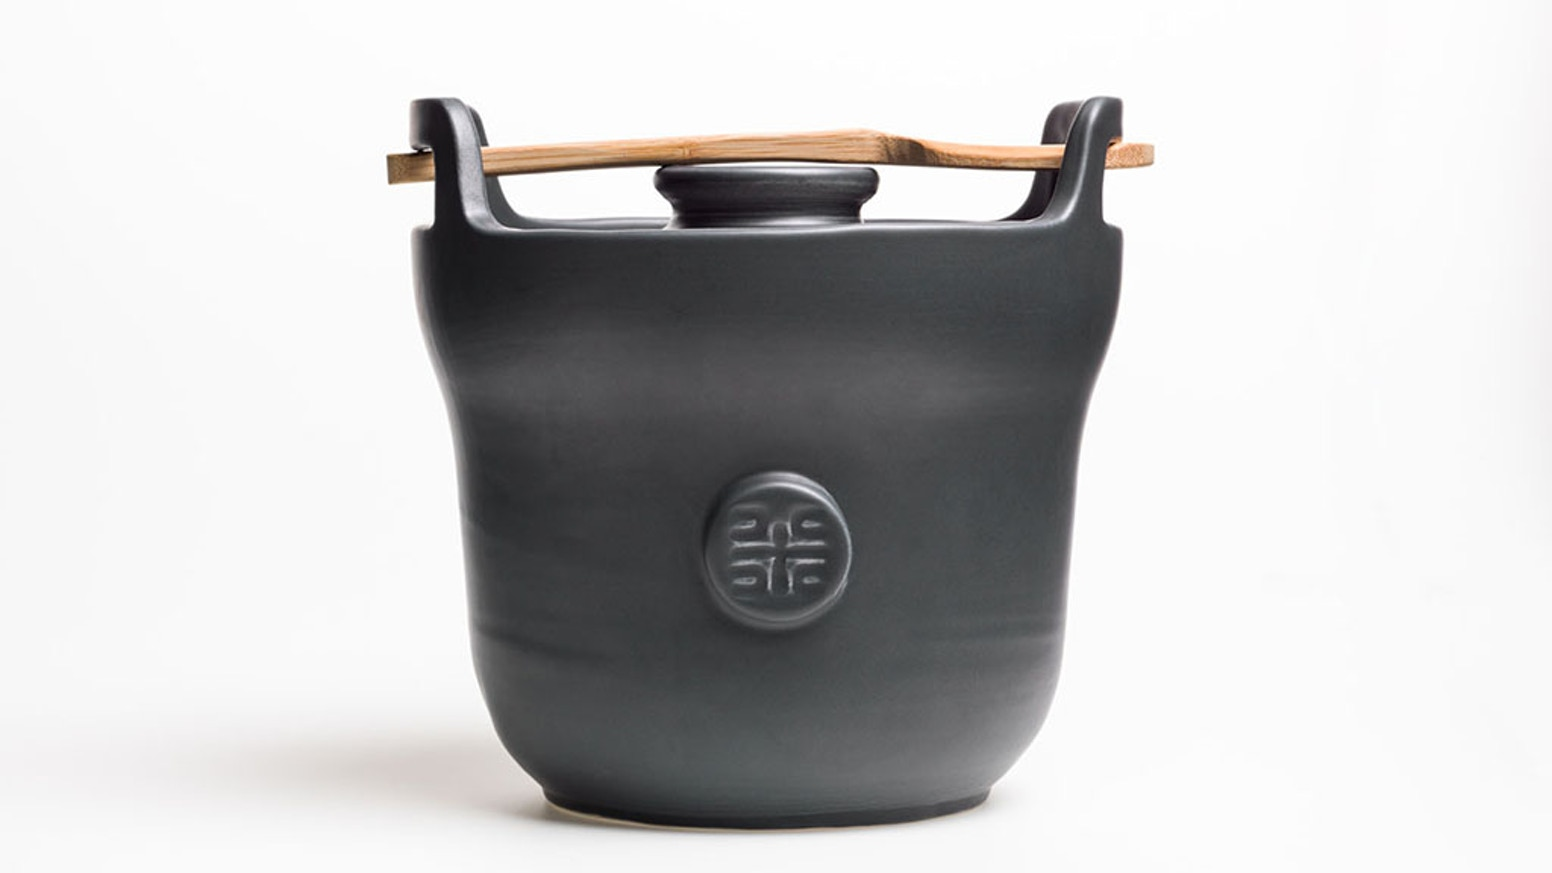 Durable ceramic rice cooker for cooking delicious rice an easy way.  This rice cooker will last you a lifetime (and longer)